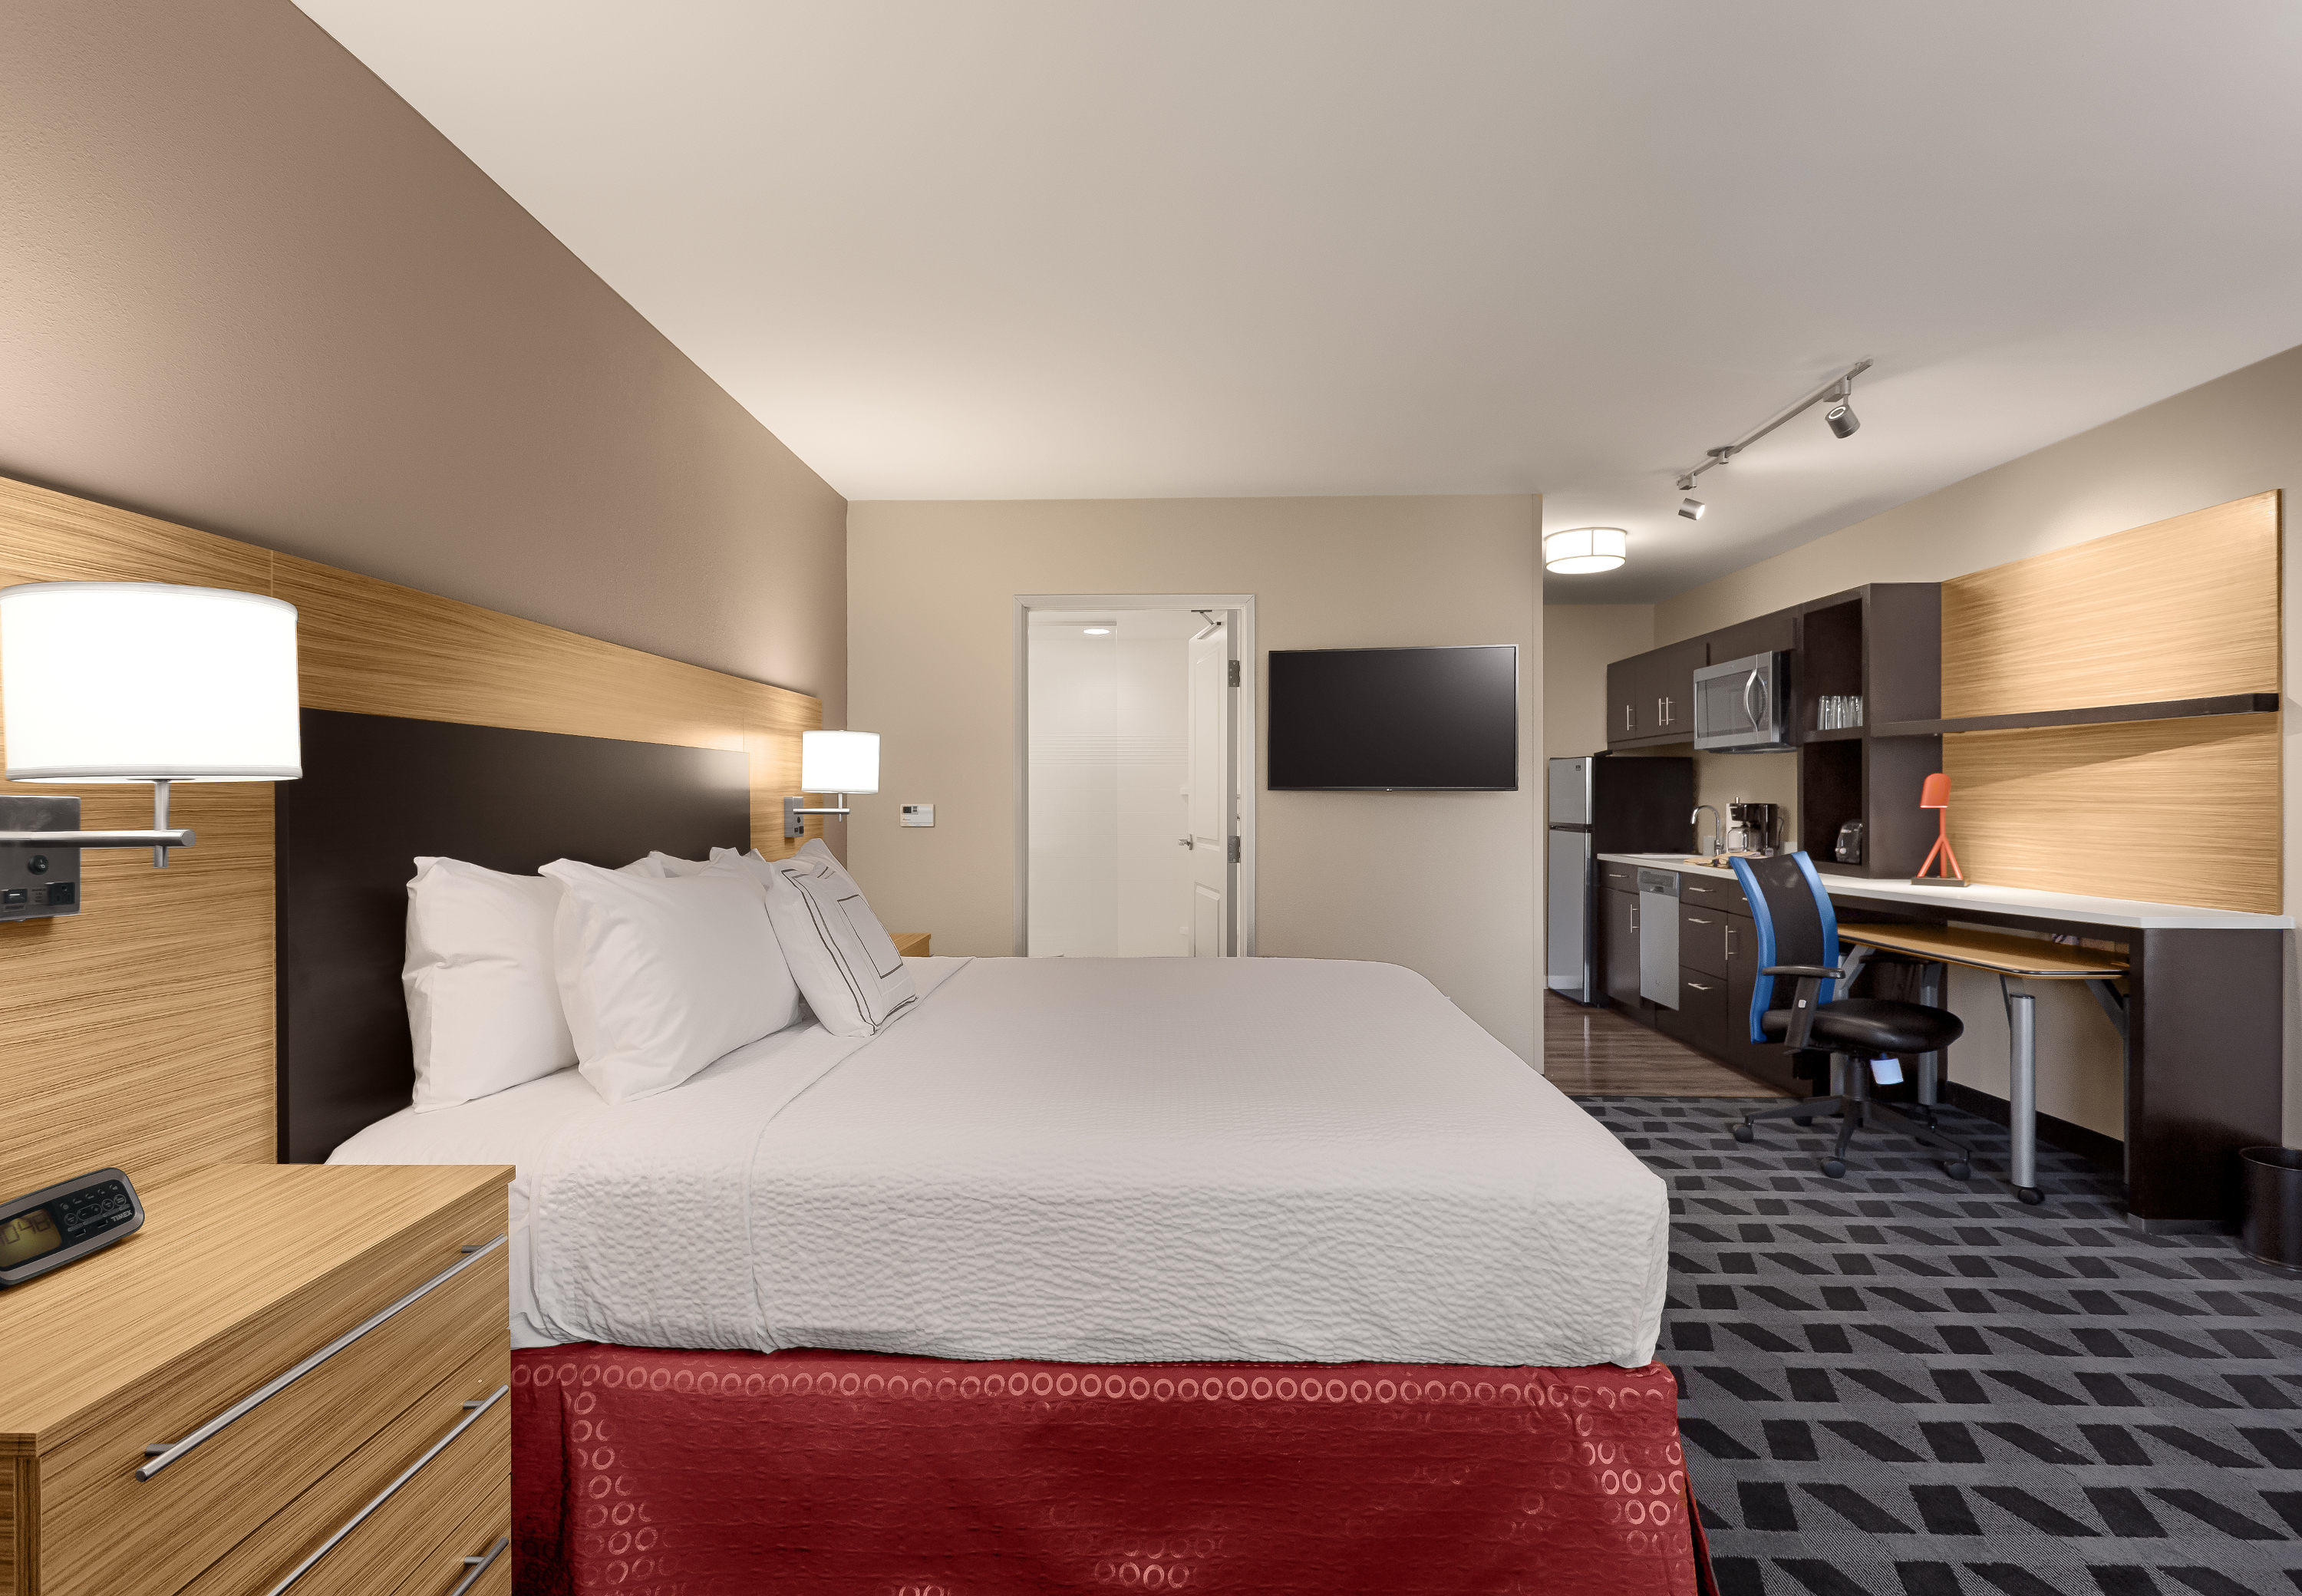 TownePlace Suites by Marriott Charleston Mt. Pleasant image 15